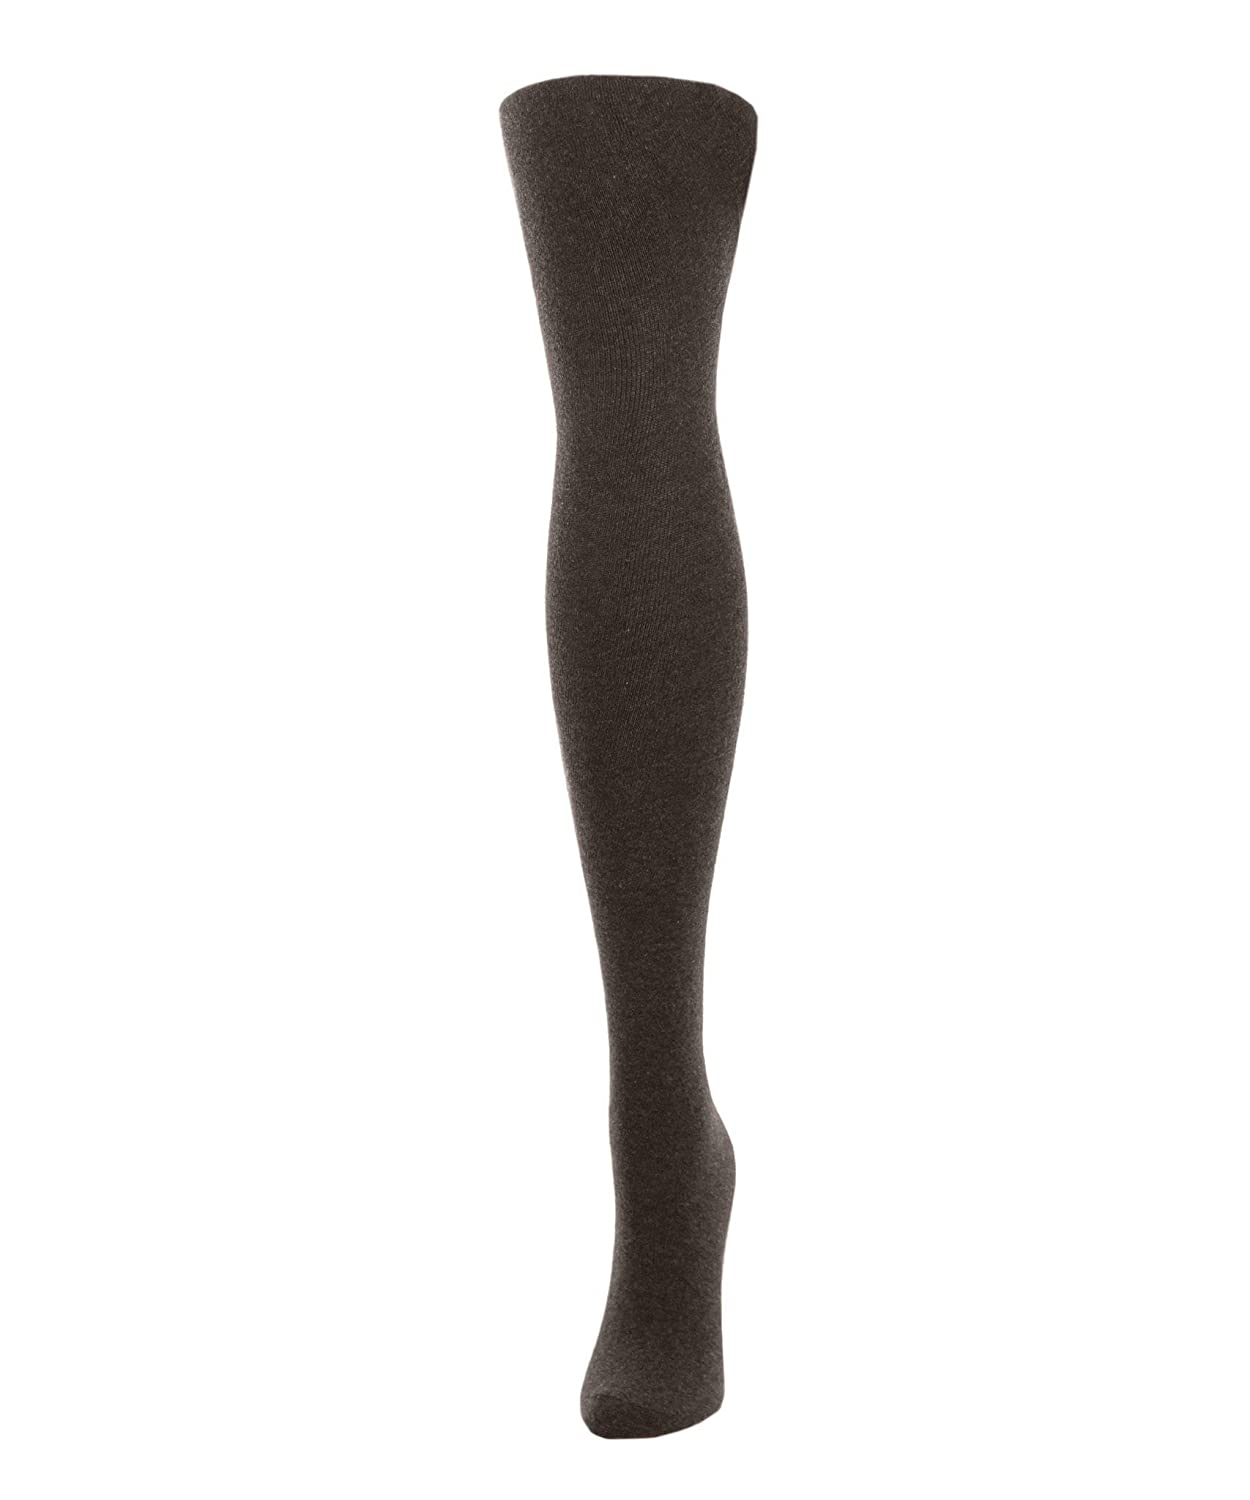 MeMoi Solid Knit Cotton Sweater Tights | Girls Tights 2270240451